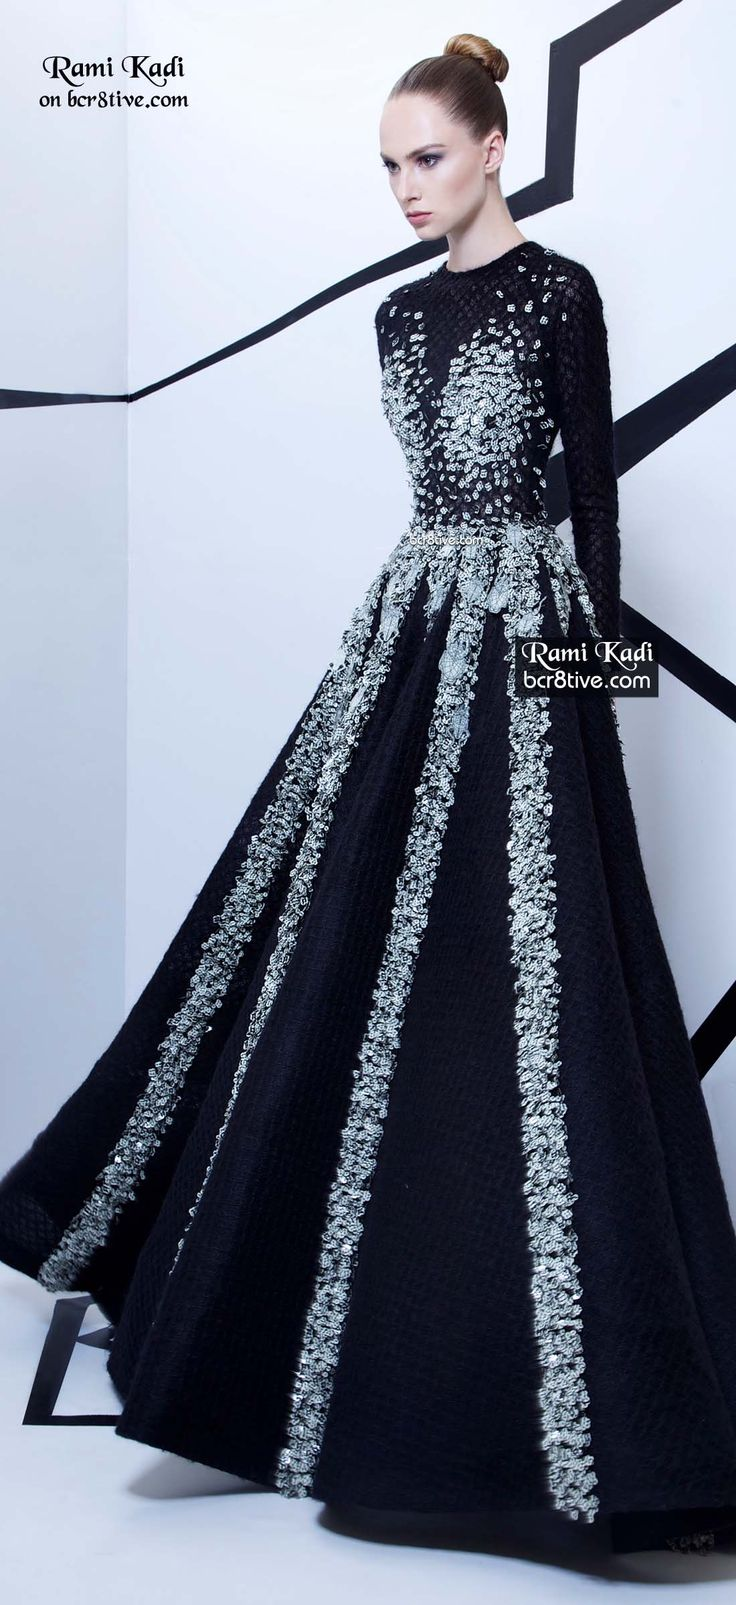 175 best images about rami kadi haute couture on for Rami kadi wedding dresses prices